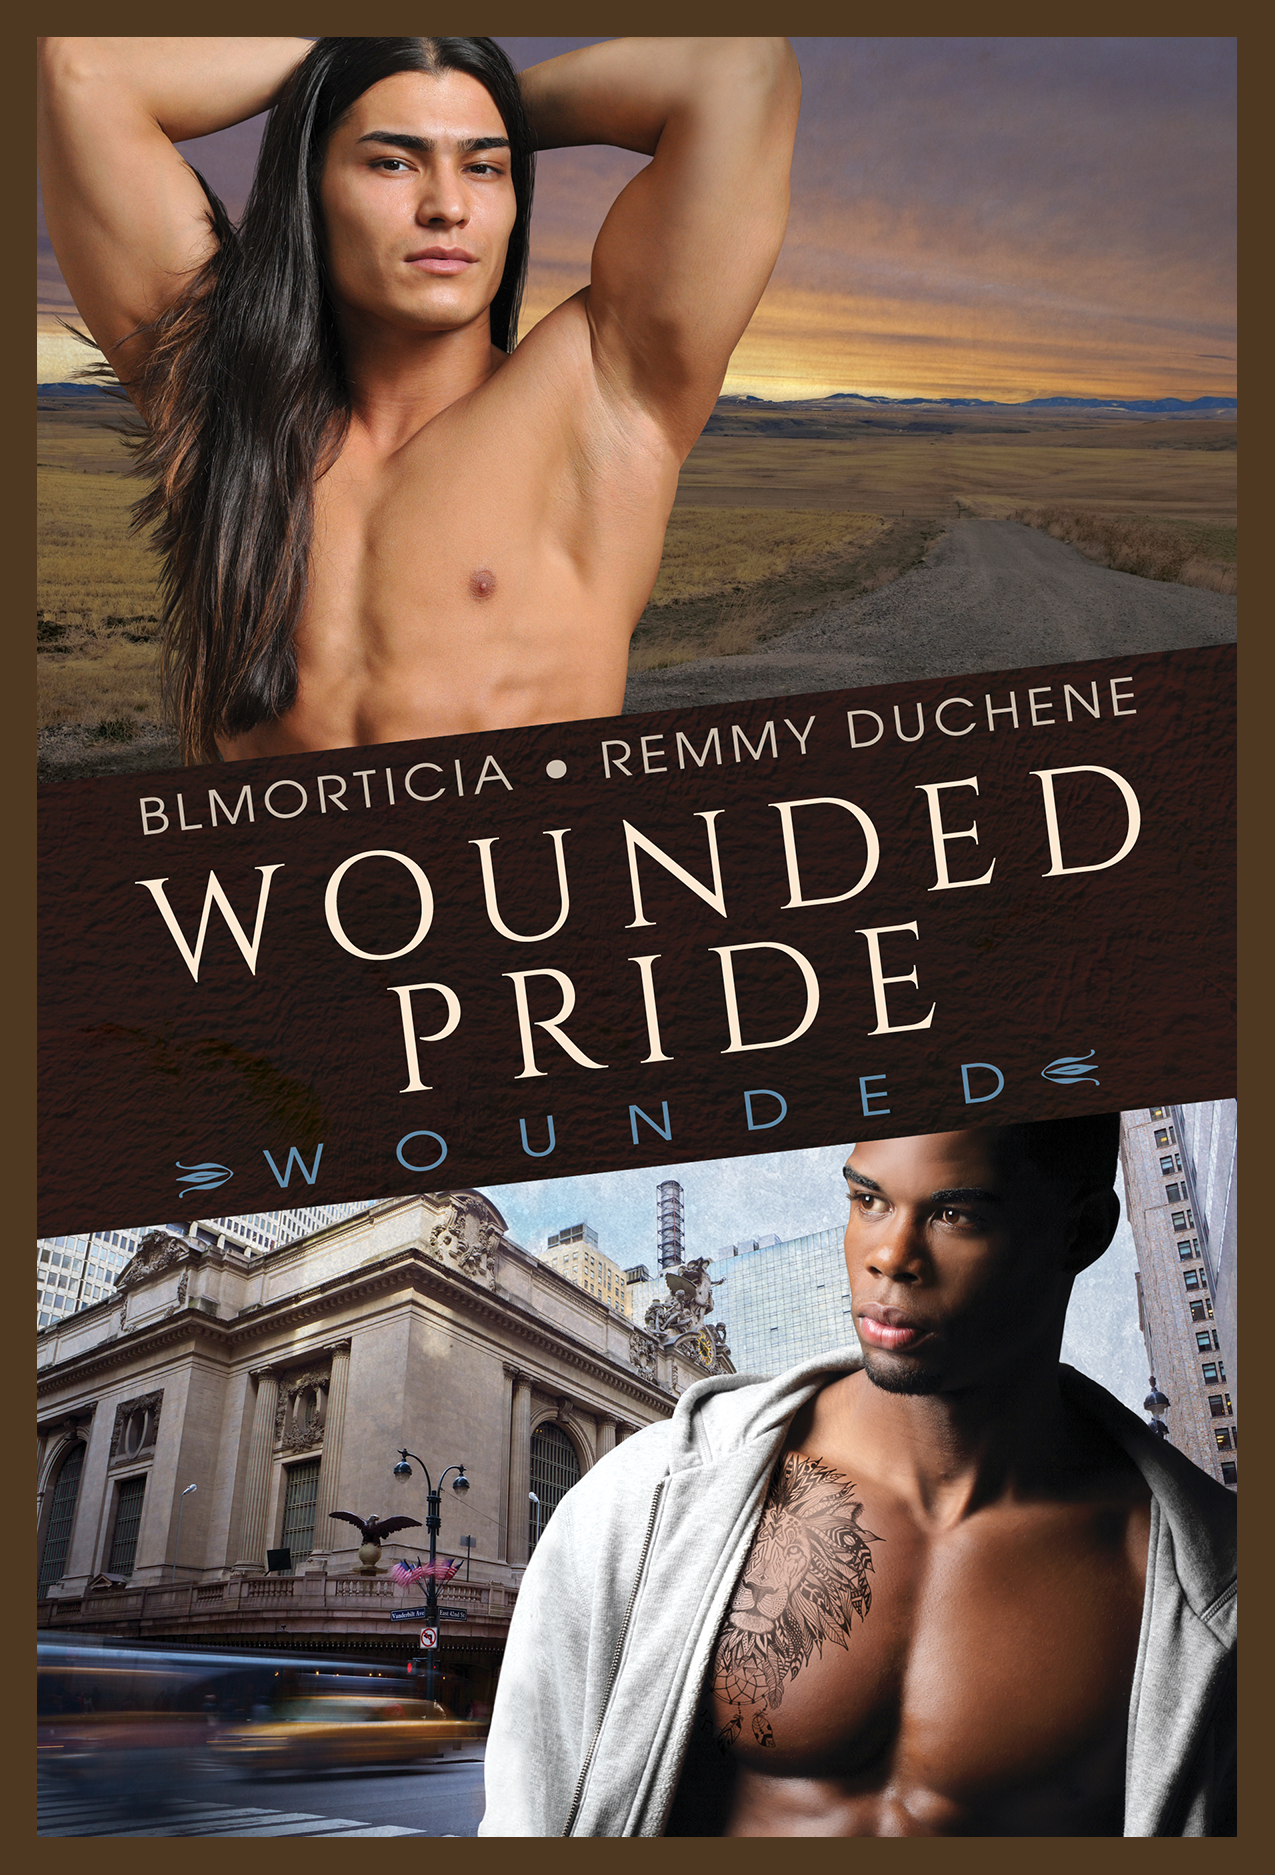 Wounded Pride by Remmy Duchene and BLMorticia